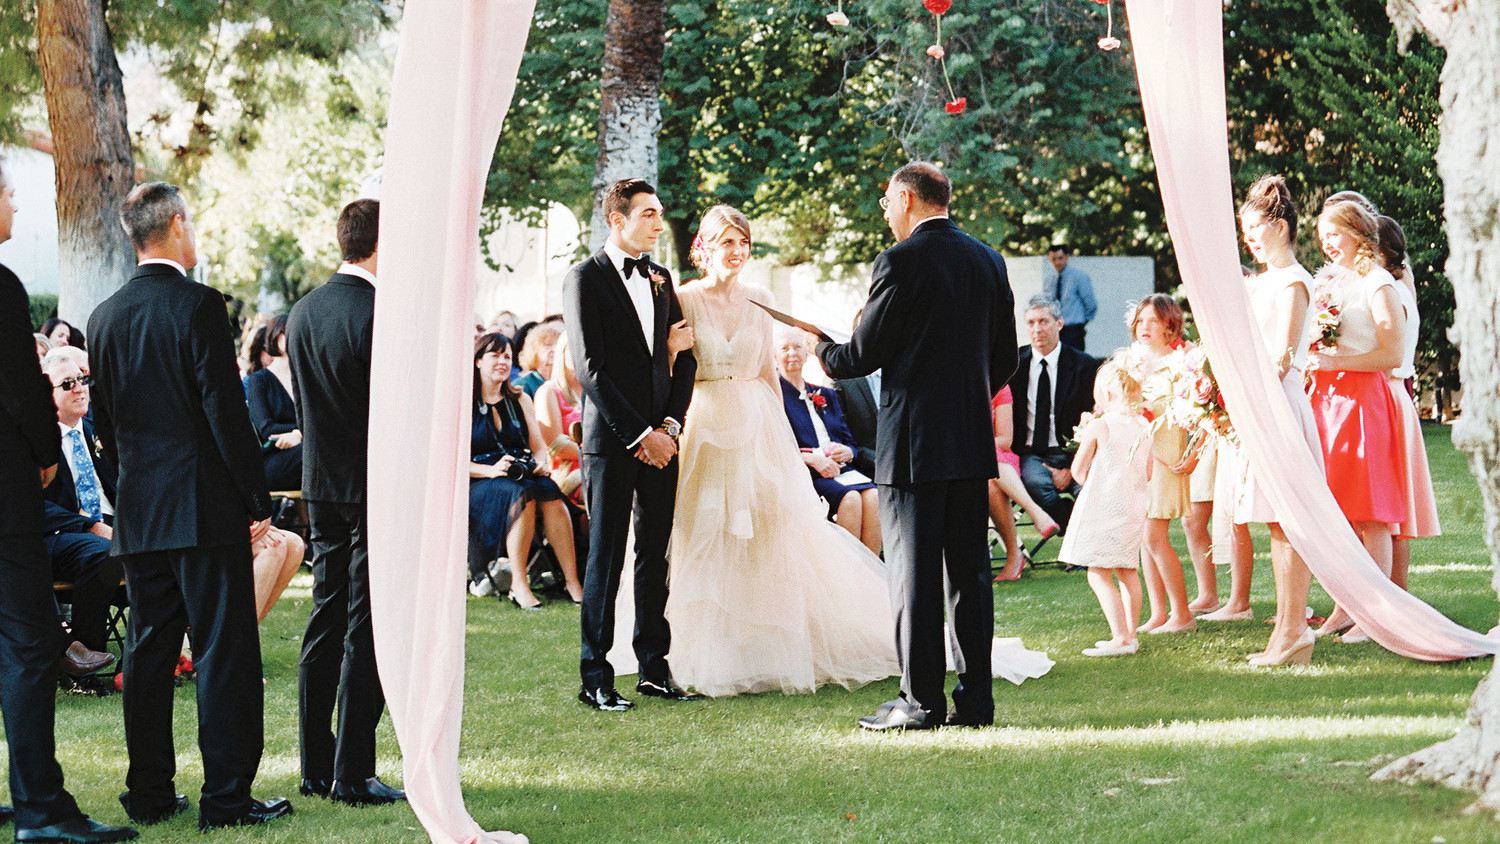 Martha Stewart Weddings: The Best Season To Get Married Based On Your Personality